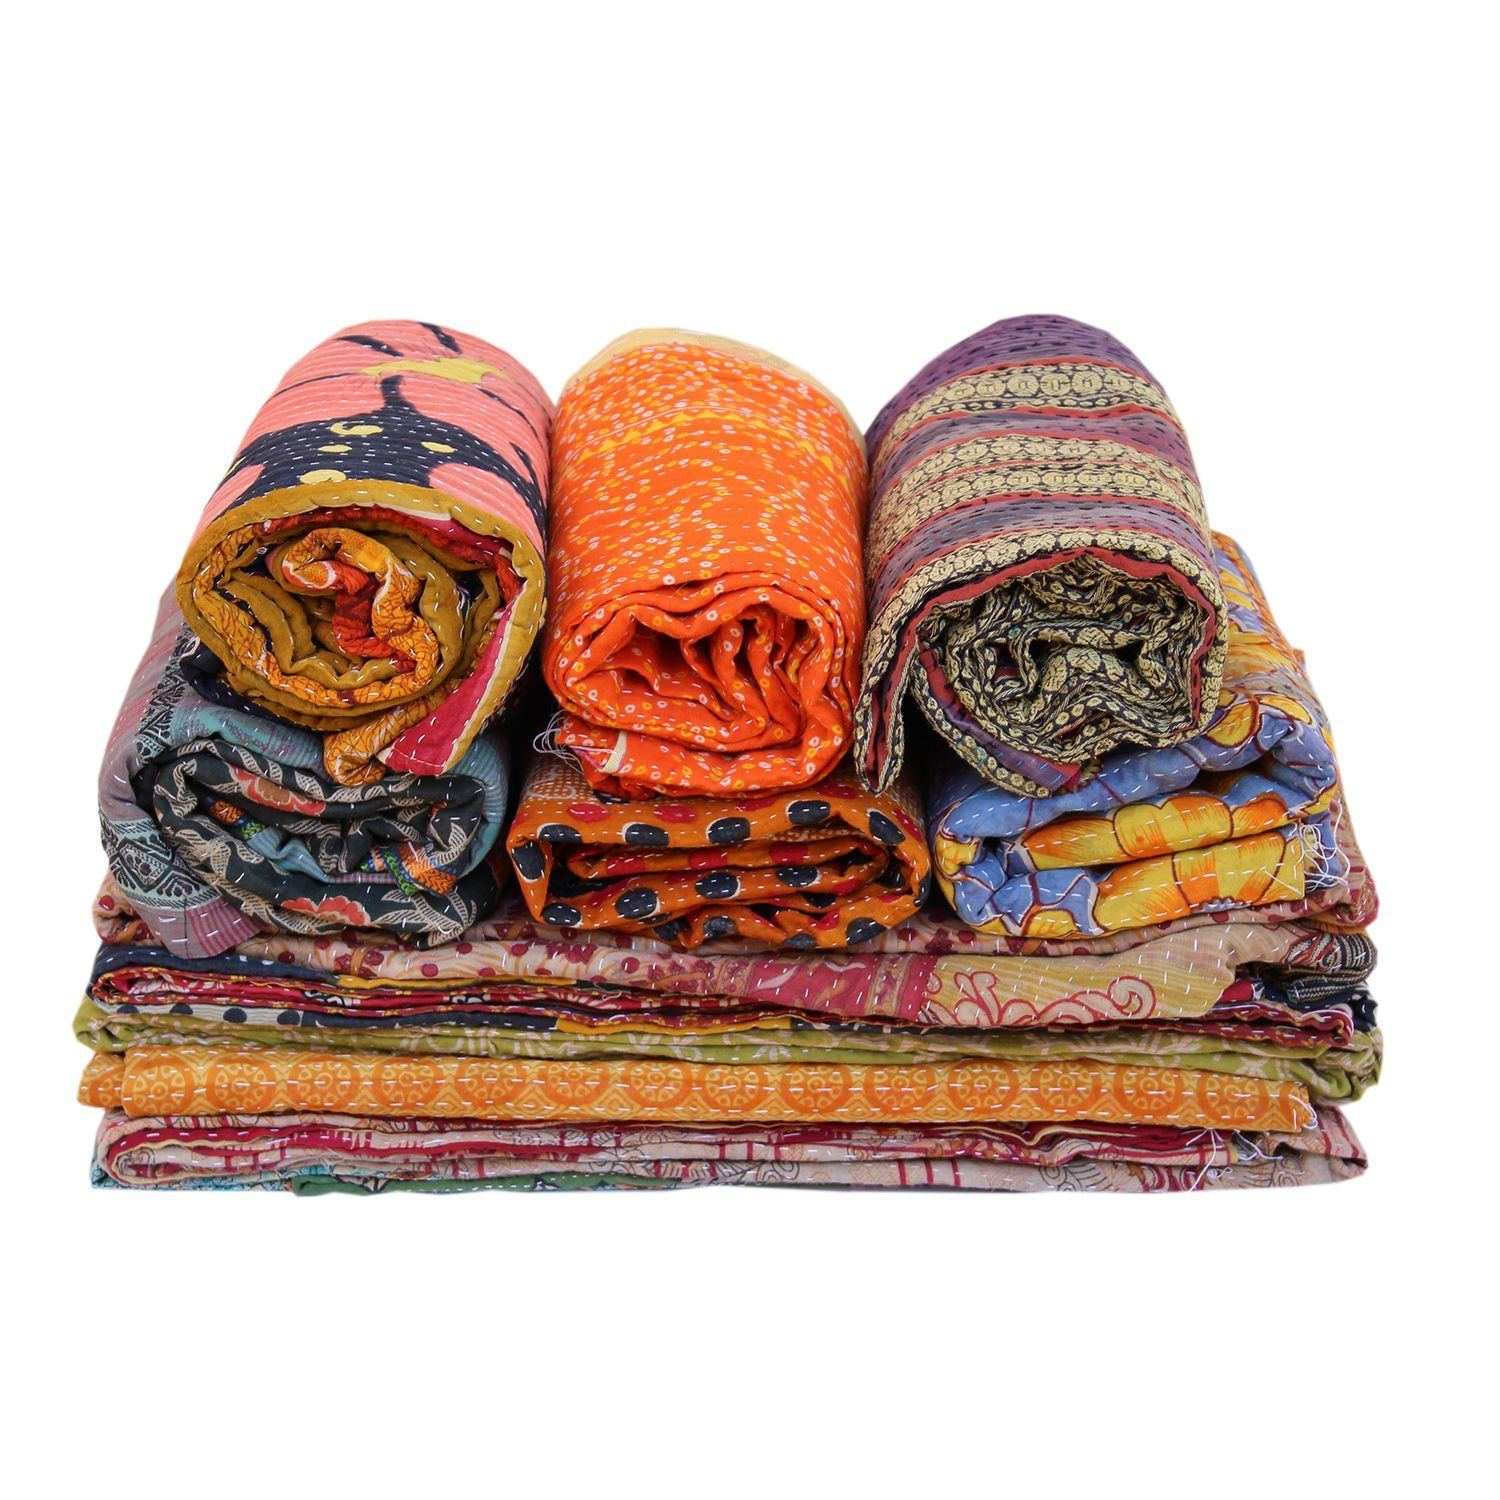 20 PC Lot Wholesale Vintage Kantha Quilt  Throw Blanket Bedding India Bedspread